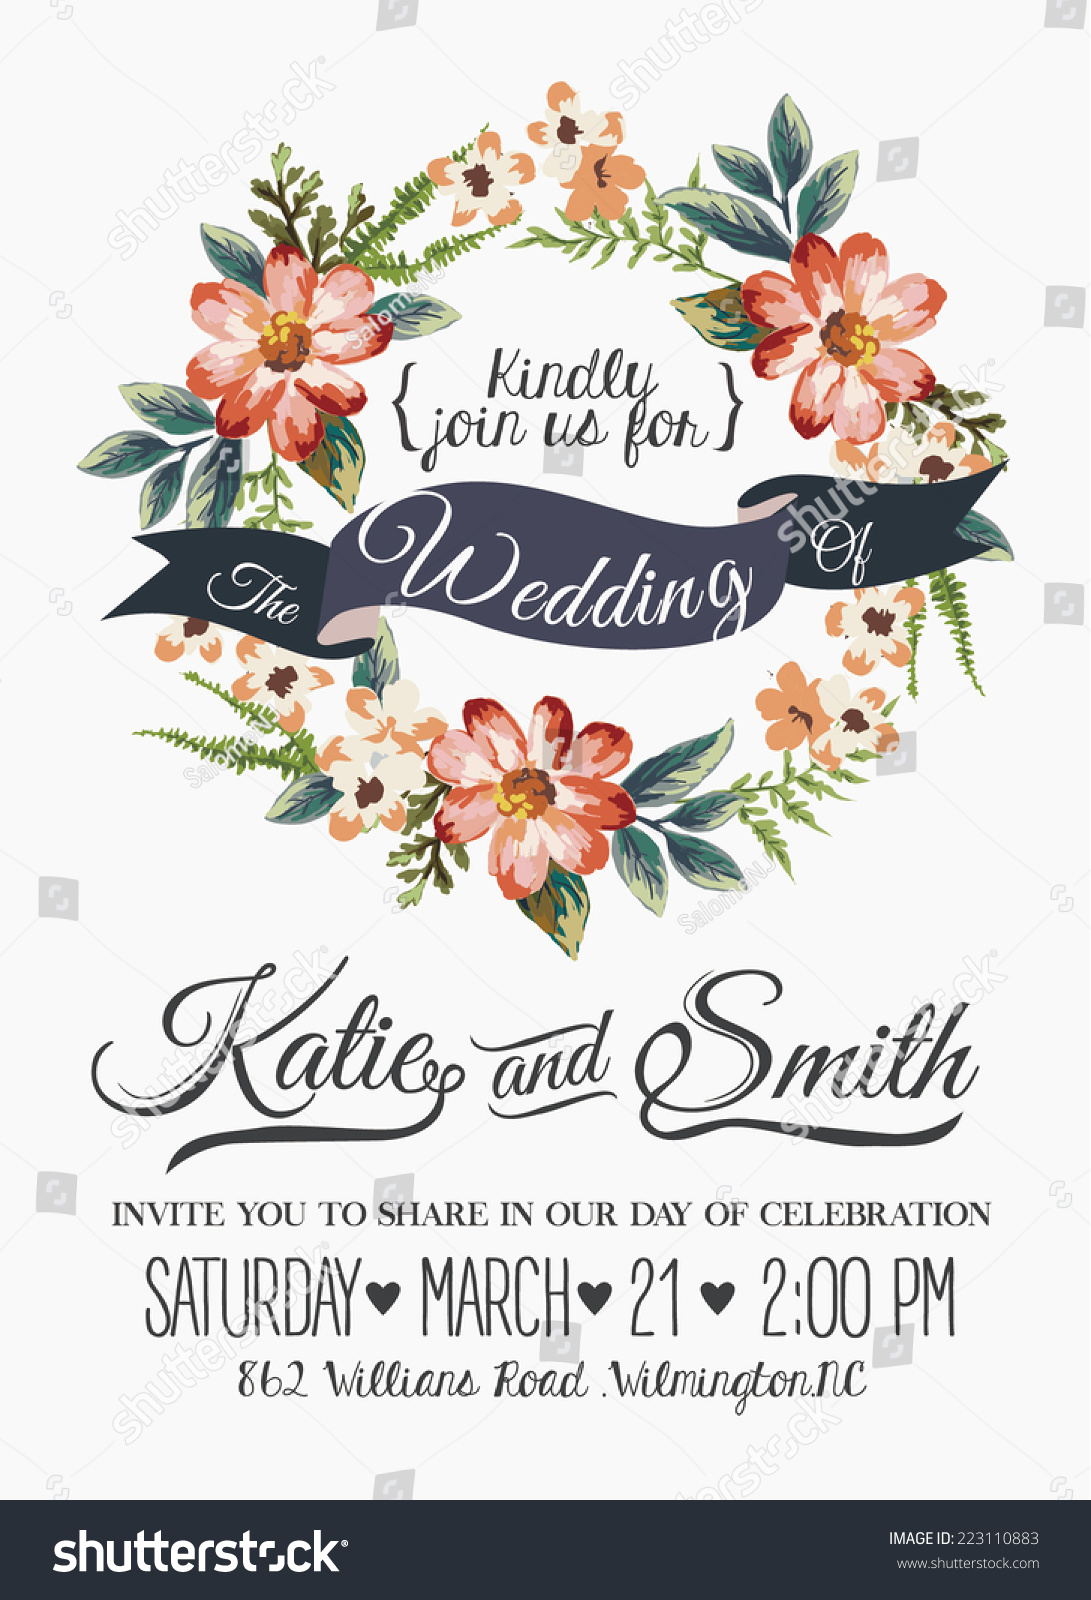 wedding invitation card romantic flower templates stock vector, flower ...